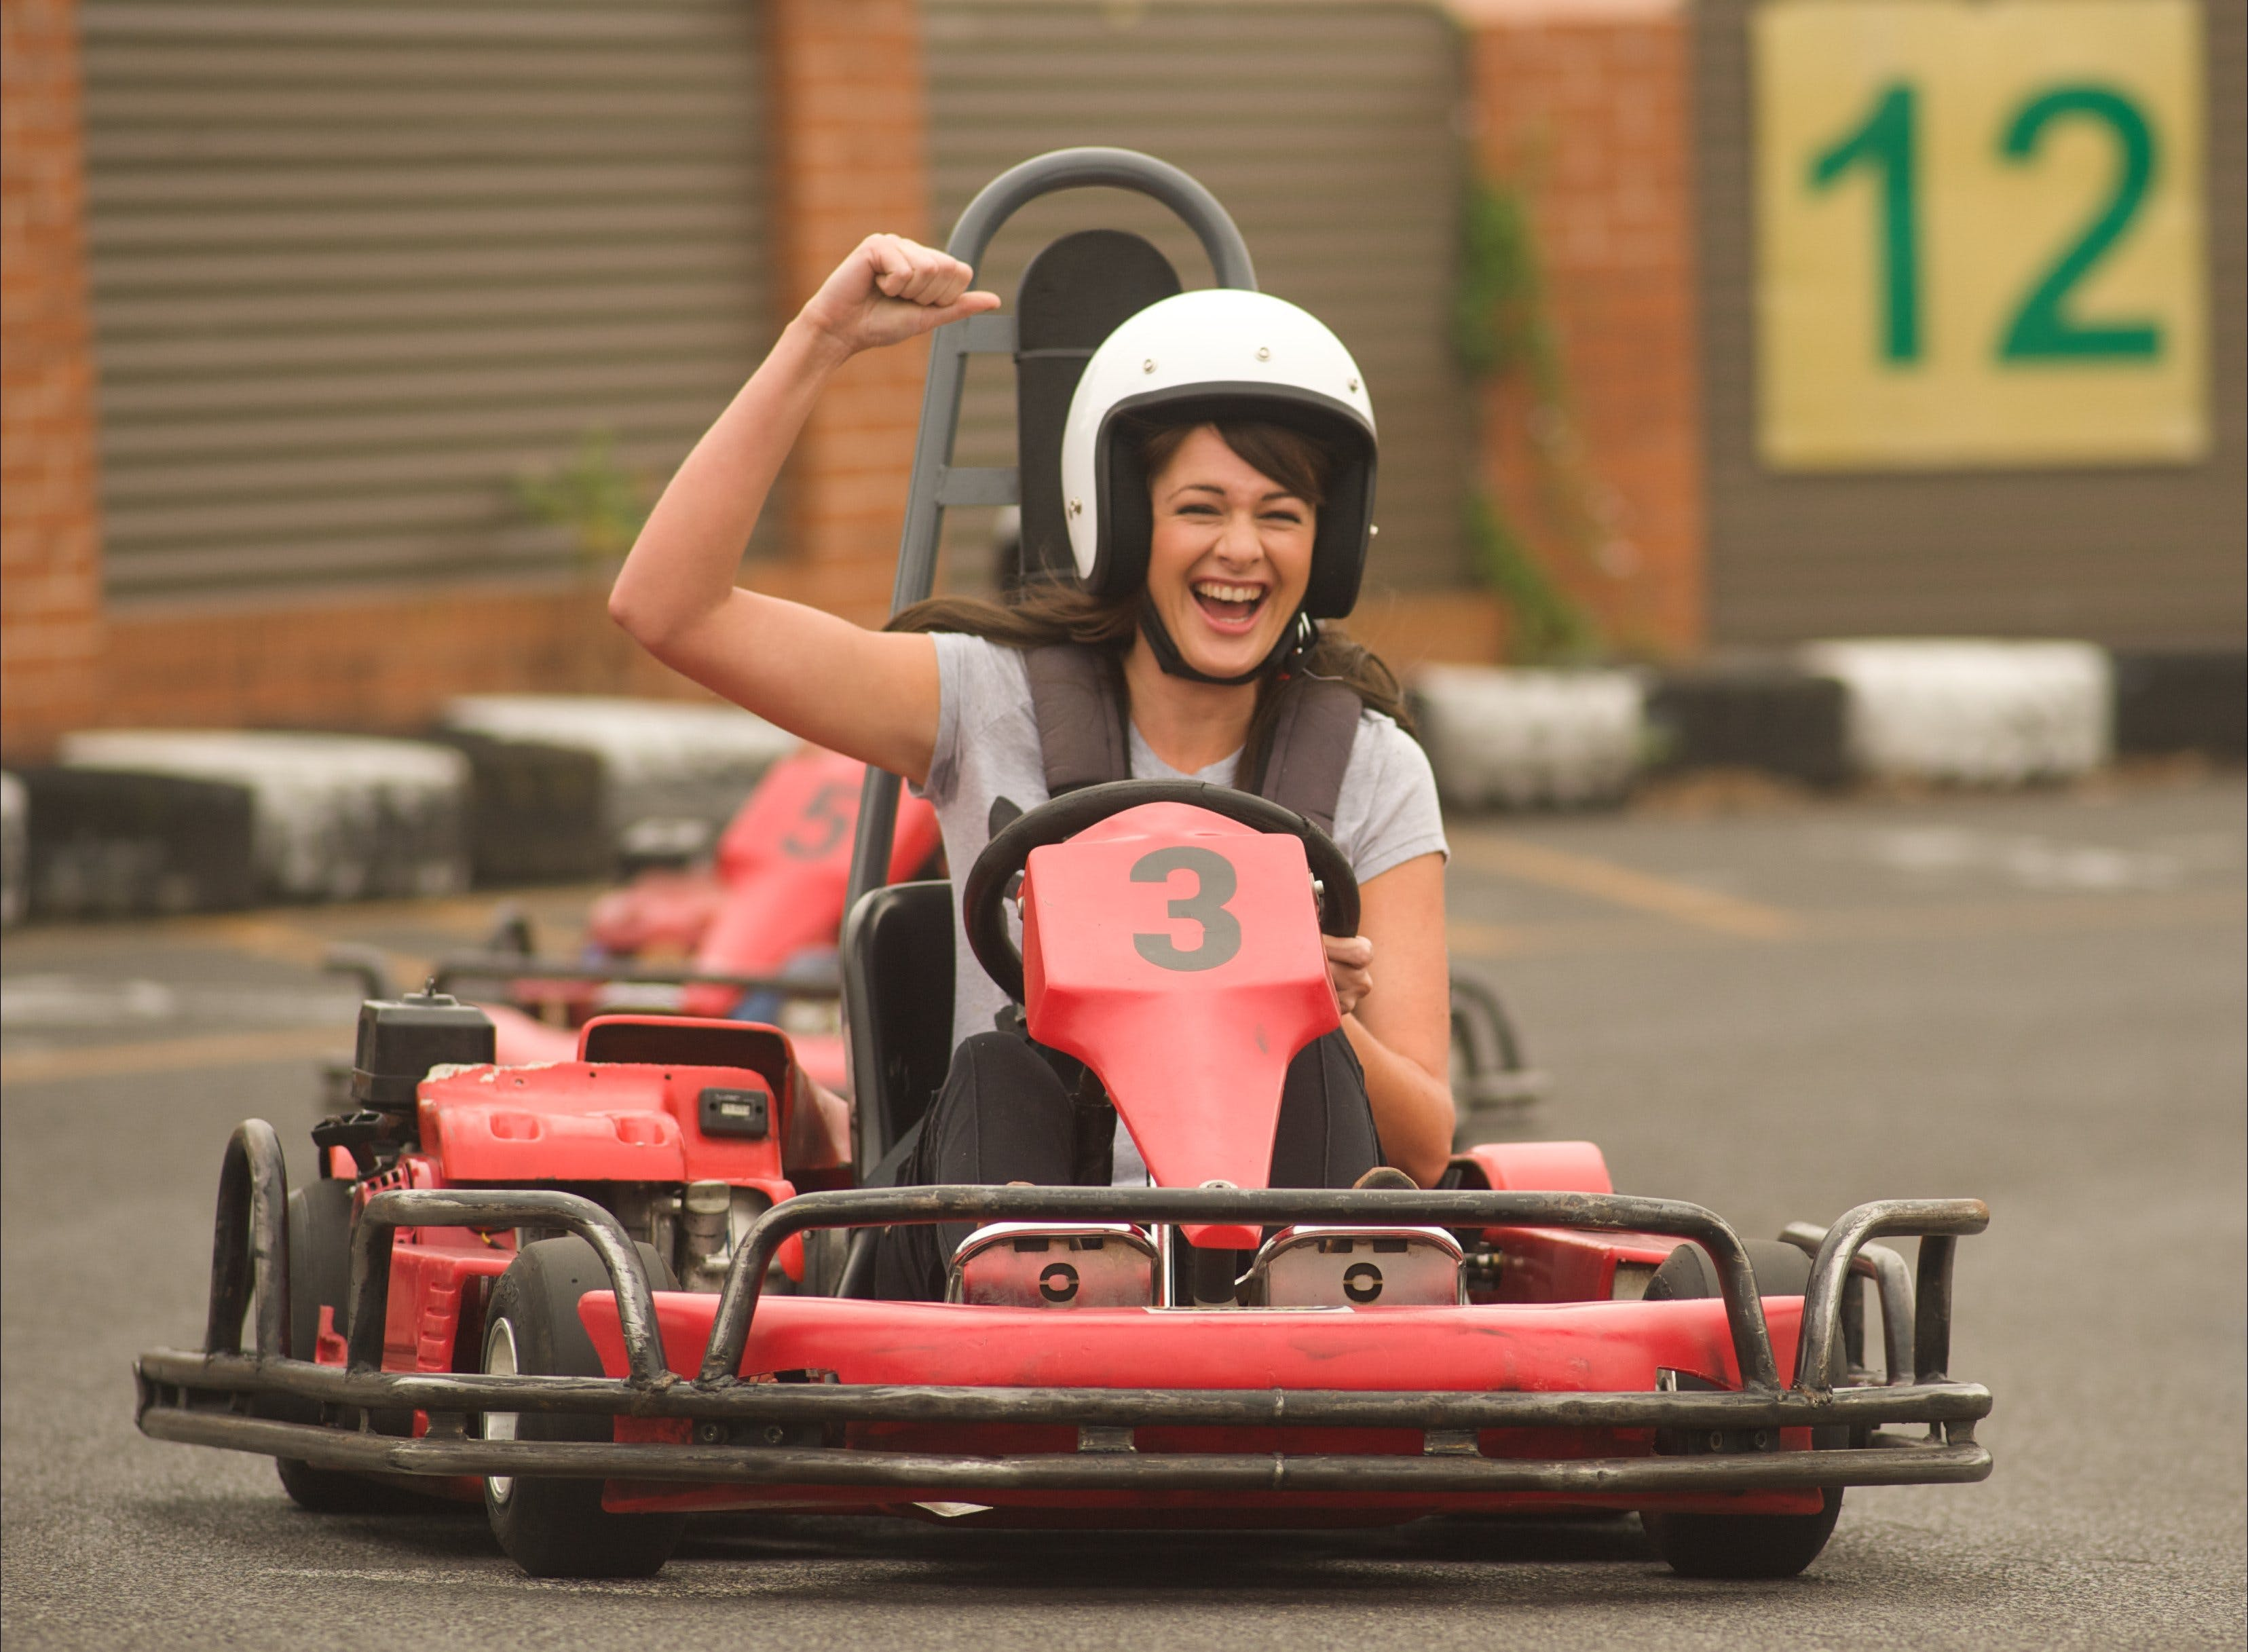 Fastlane Karting - Attractions